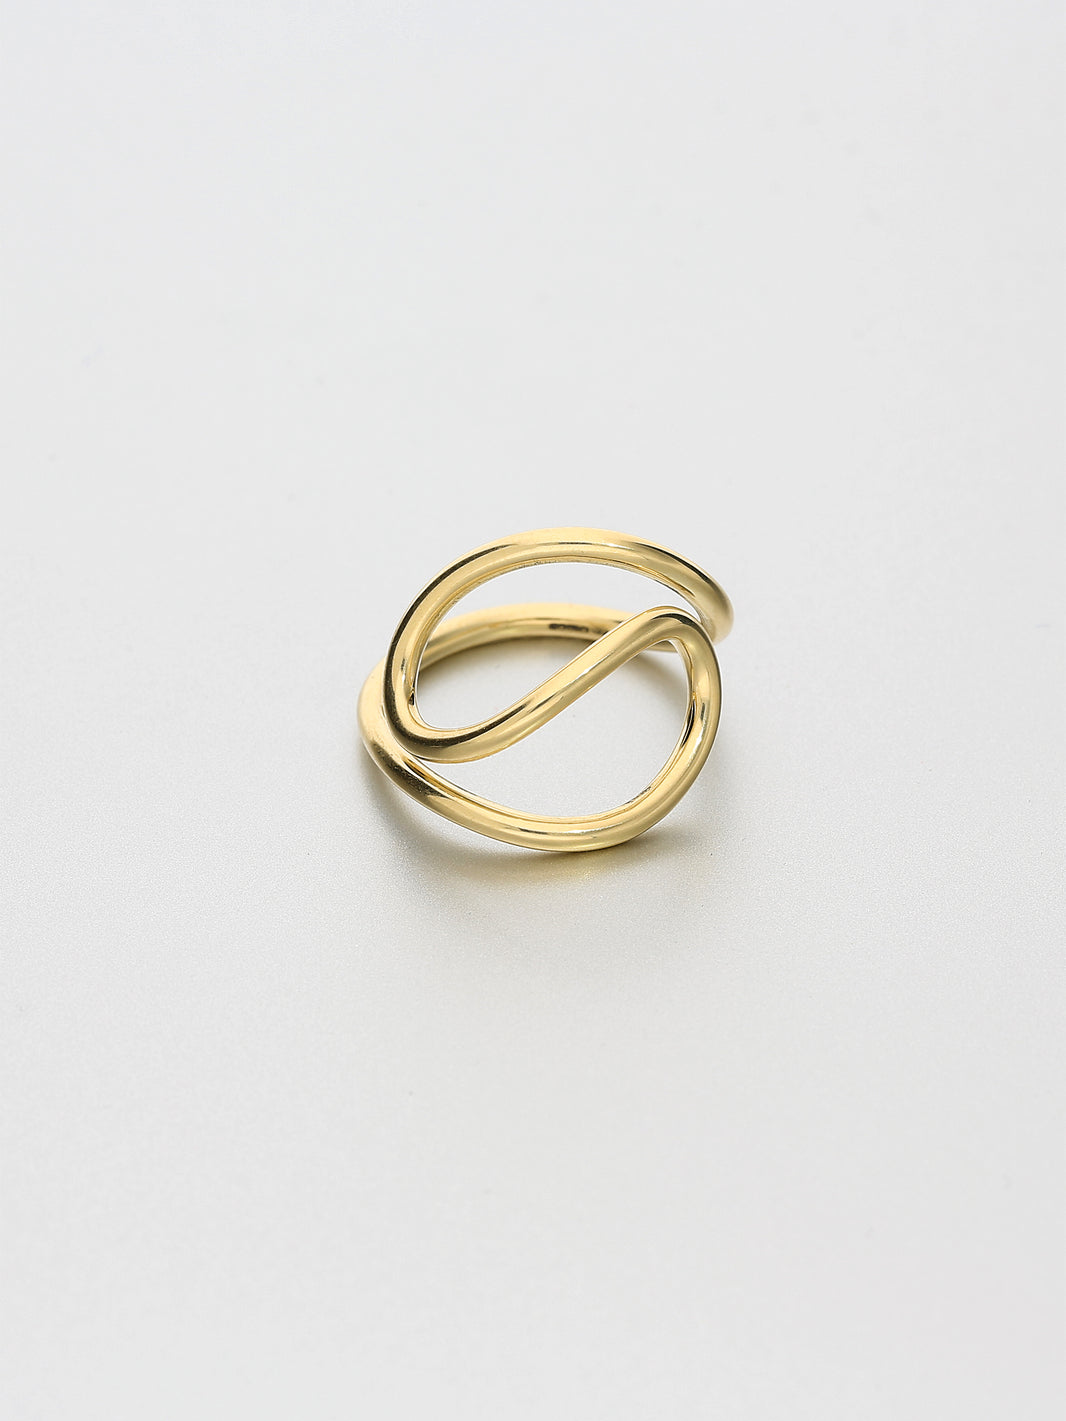 Aeon Ring, VII Yellow gold